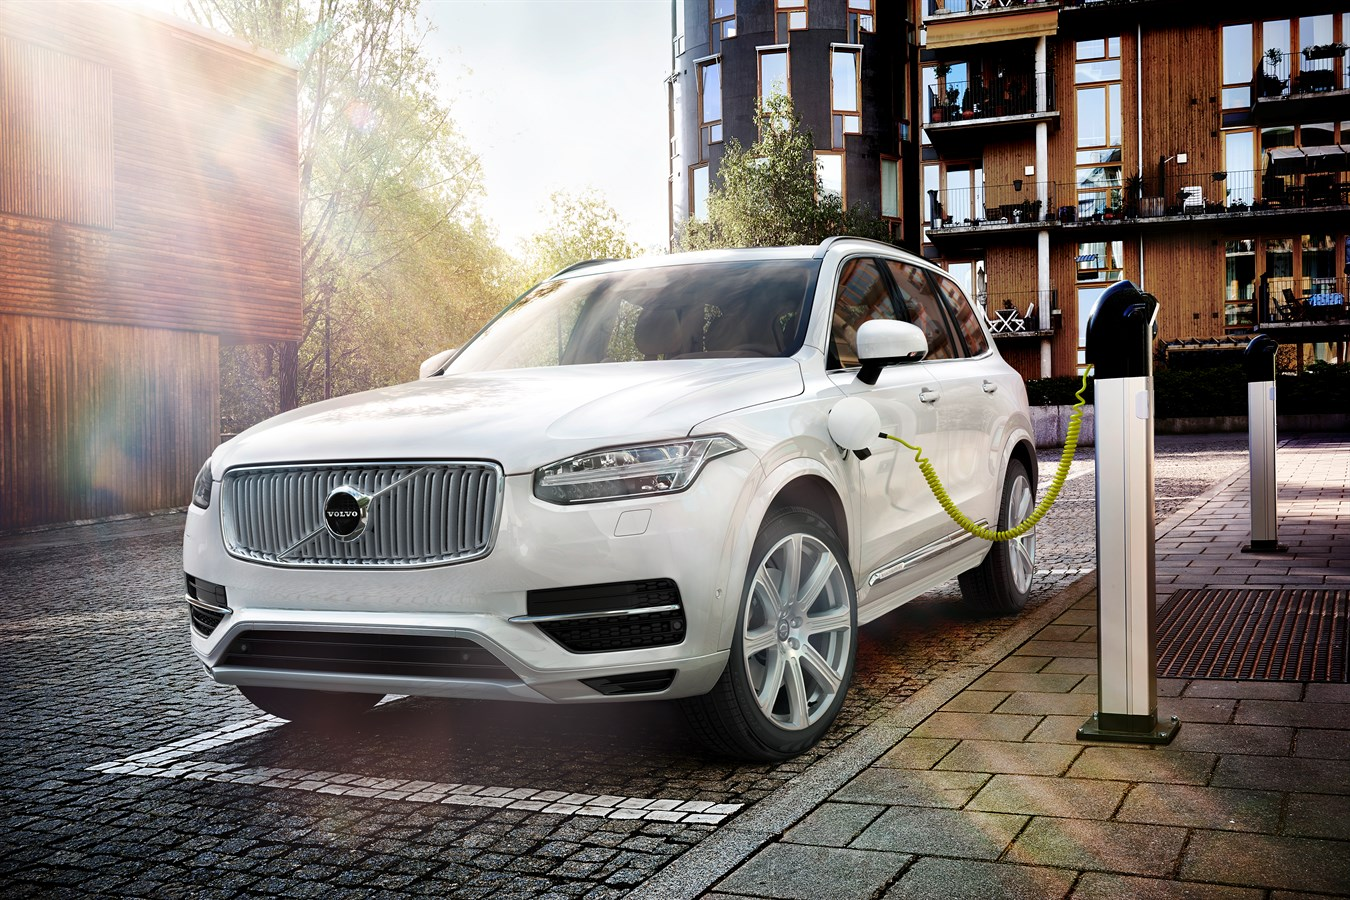 Volvo Cars Introduces Twin Engine Technology In World S Most Ful And Cleanest Suv Car Usa Newsroom